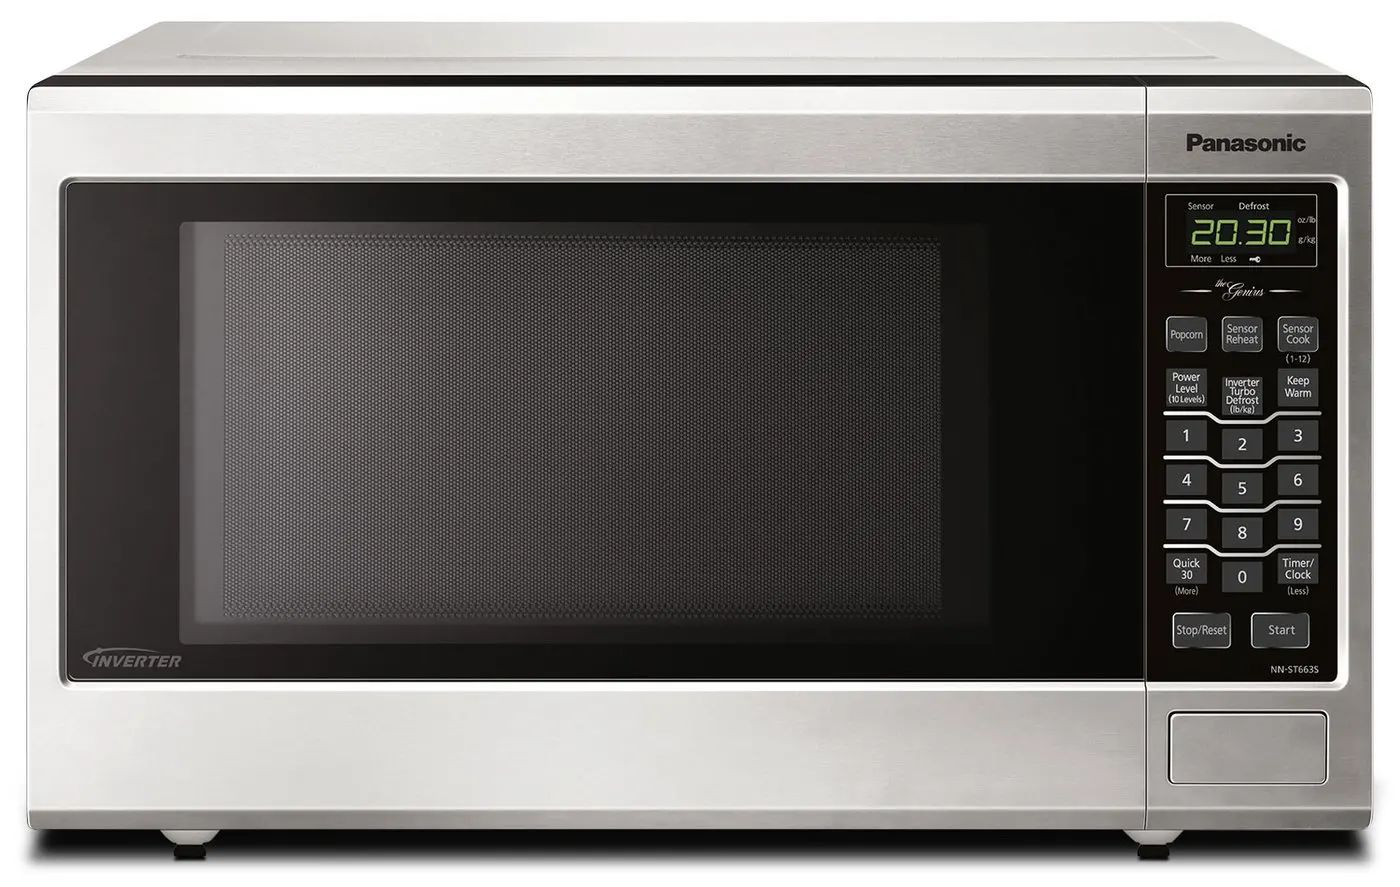 panasonic 20 inch 1 2 cu ft countertop microwave oven in stainless steel nnst663sc